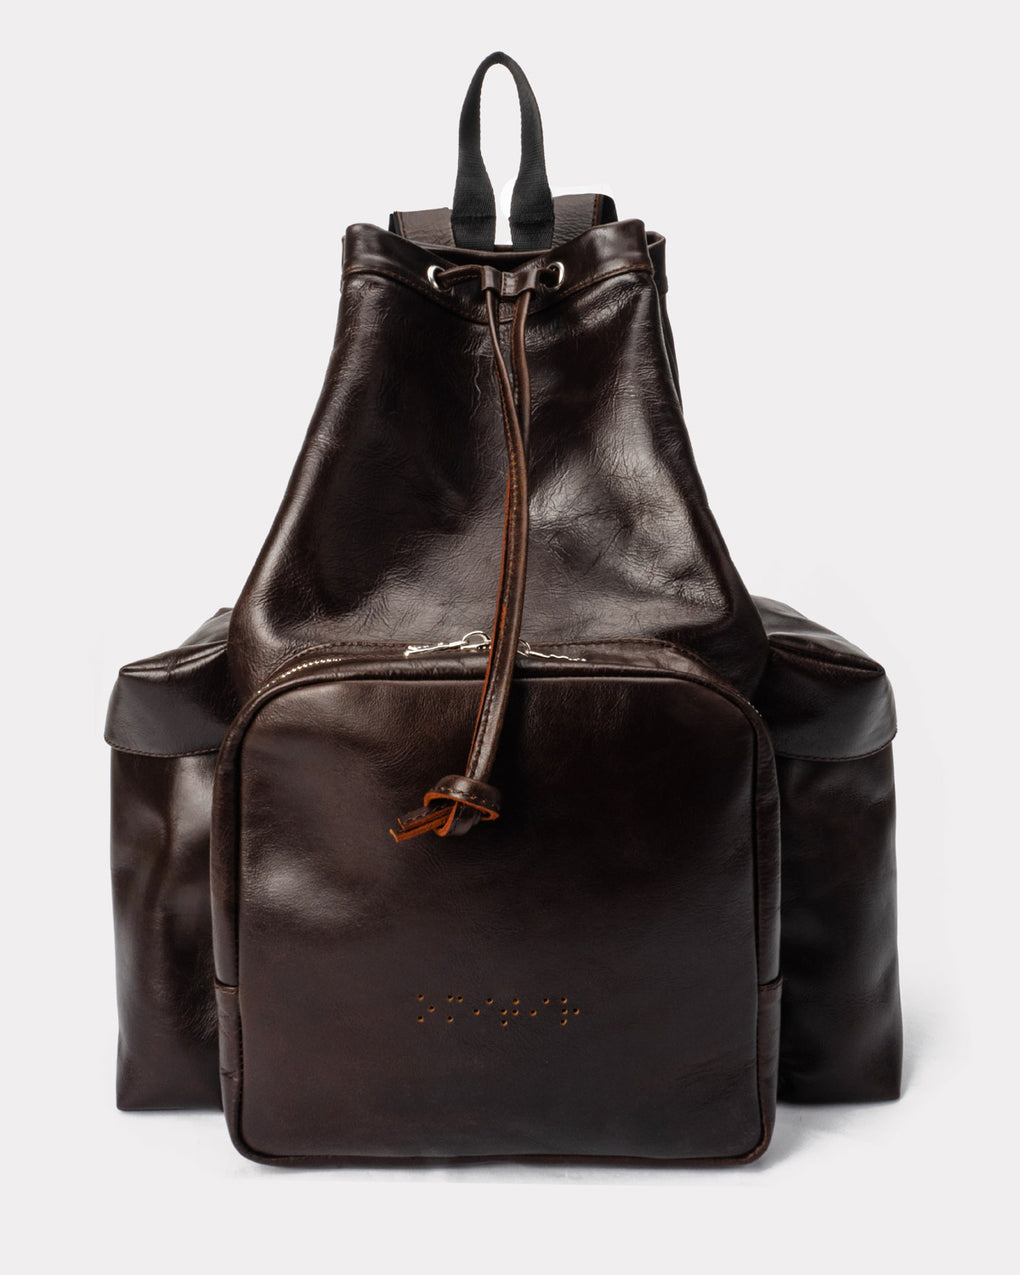 Parachute Backpack - Burnt Amber